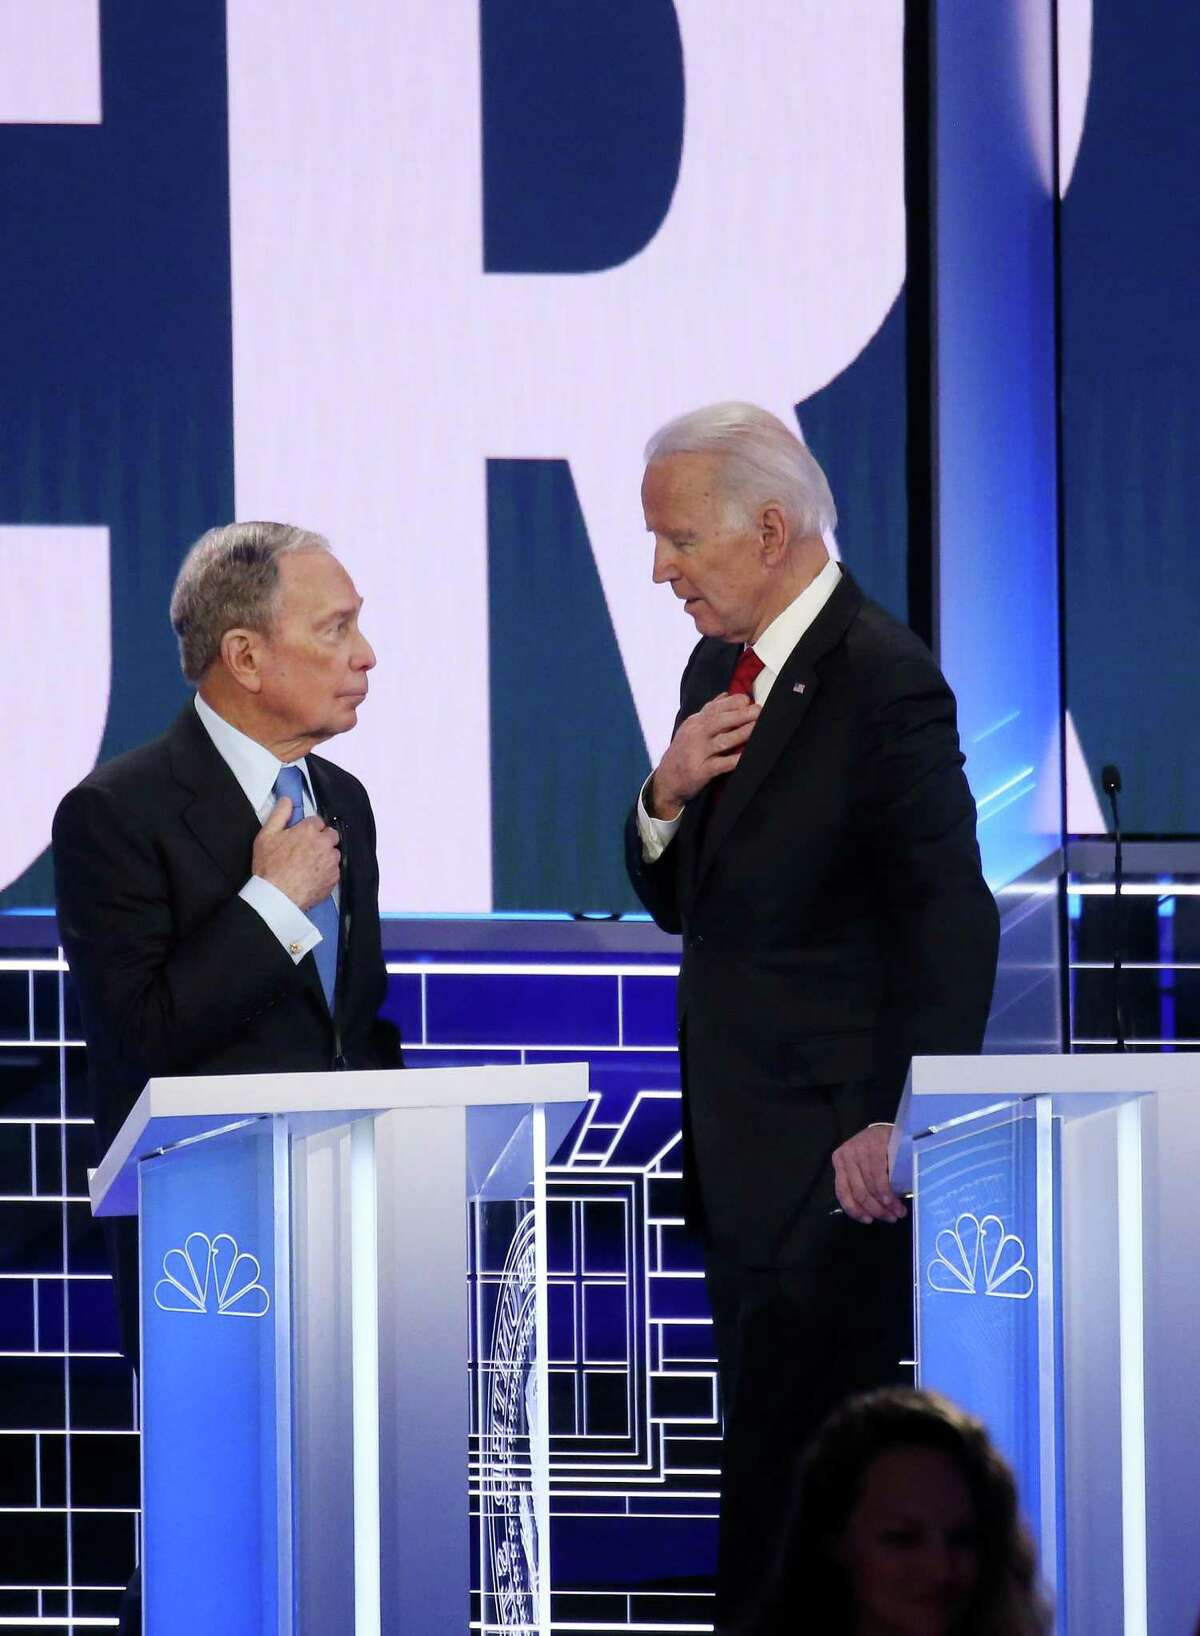 LAS VEGAS, NEVADA - FEBRUARY 19: Democratic presidential candidates former New York City mayor Mike Bloomberg (L) and former Vice President Joe Biden speak during a break during the Democratic presidential primary debate at Paris Las Vegas on February 19, 2020 in Las Vegas, Nevada. Six candidates qualified for the third Democratic presidential primary debate of 2020, which comes just days before the Nevada caucuses on February 22. (Photo by Mario Tama/Getty Images)